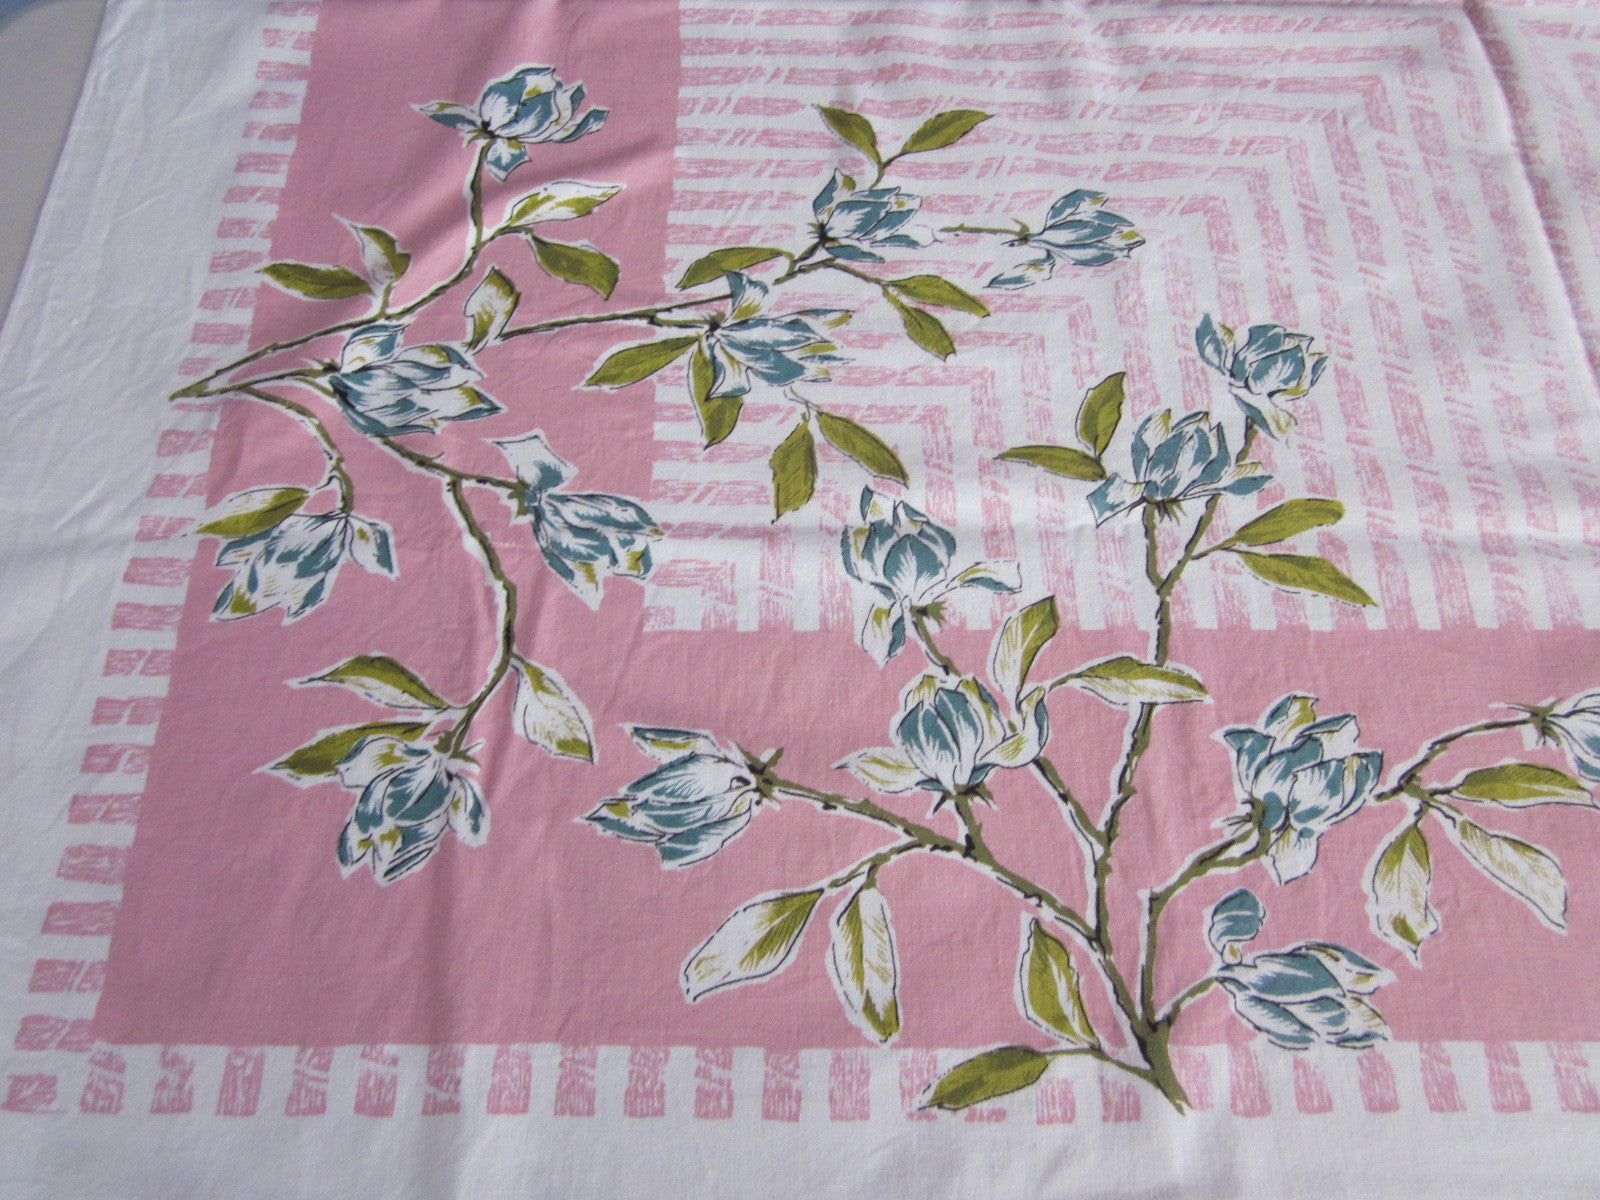 Teal Magnolias on Pink Stripes Floral Vintage Printed Tablecloth (53 X 47)